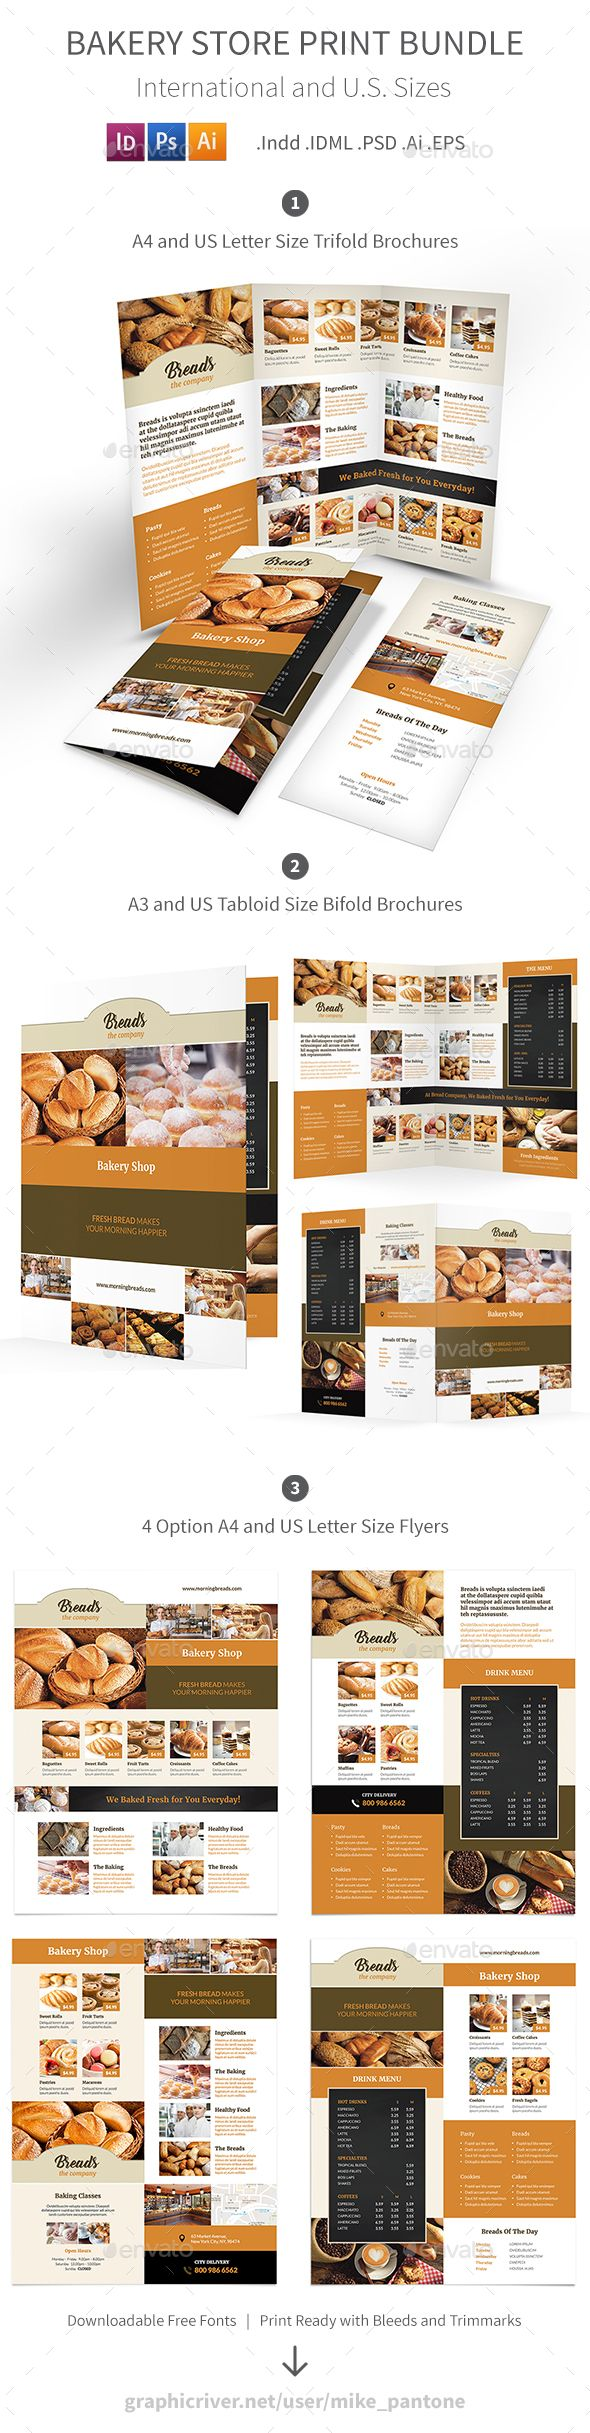 Bakery Store Print Brochure Template Bundle - PSD, Vector EPS, InDesign INDD, AI Illustrator